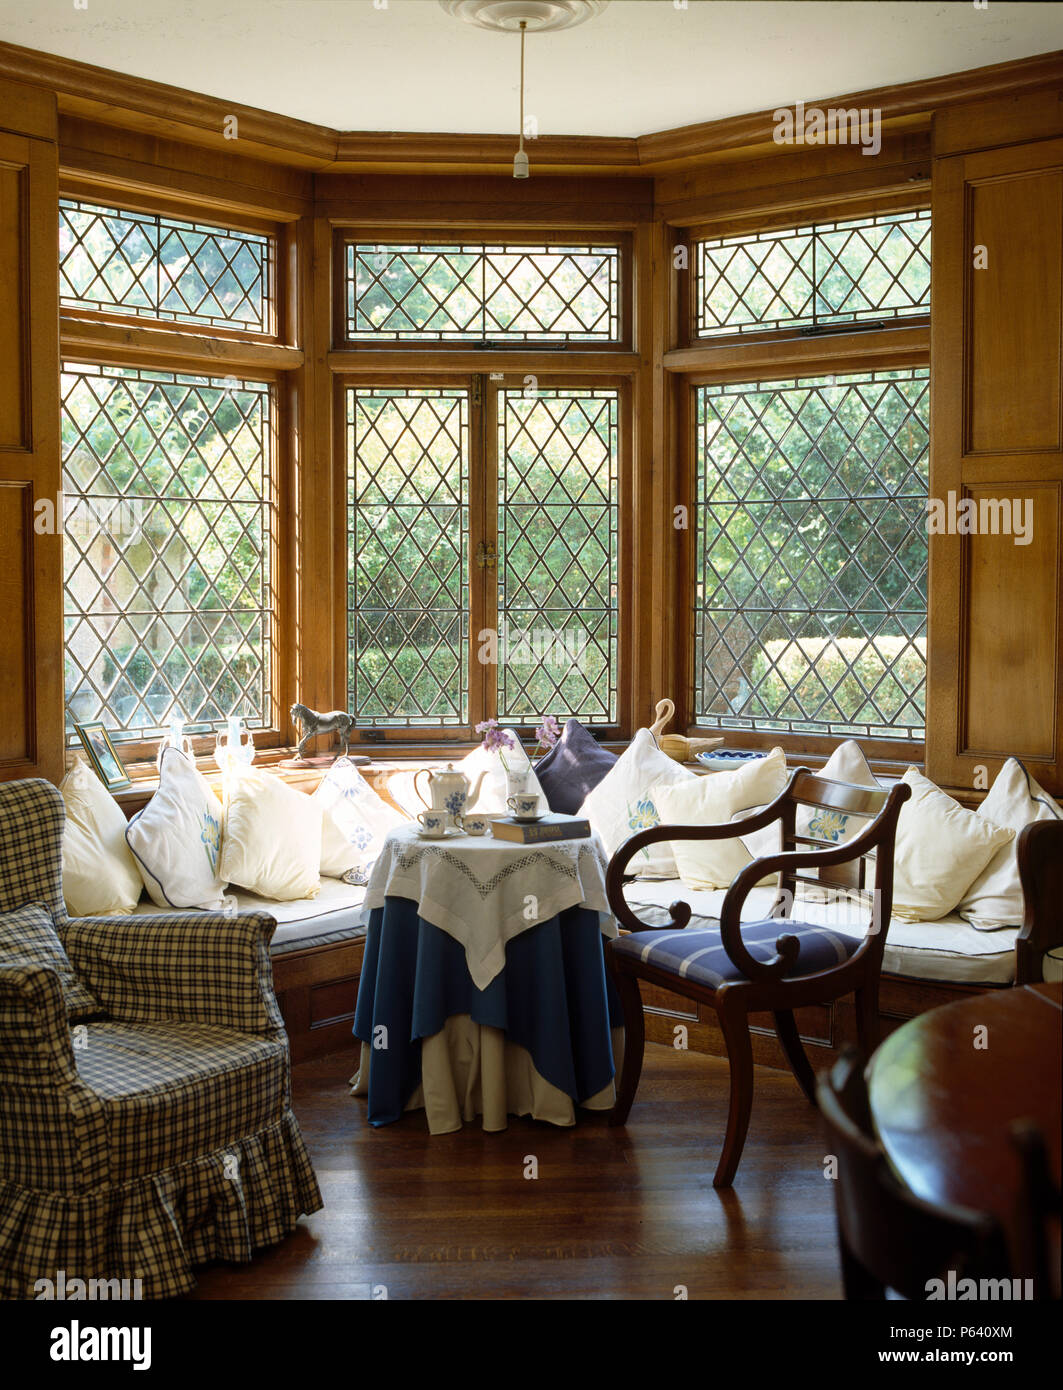 White Cushions On Window Seat Below Lattice Bay Window In Country